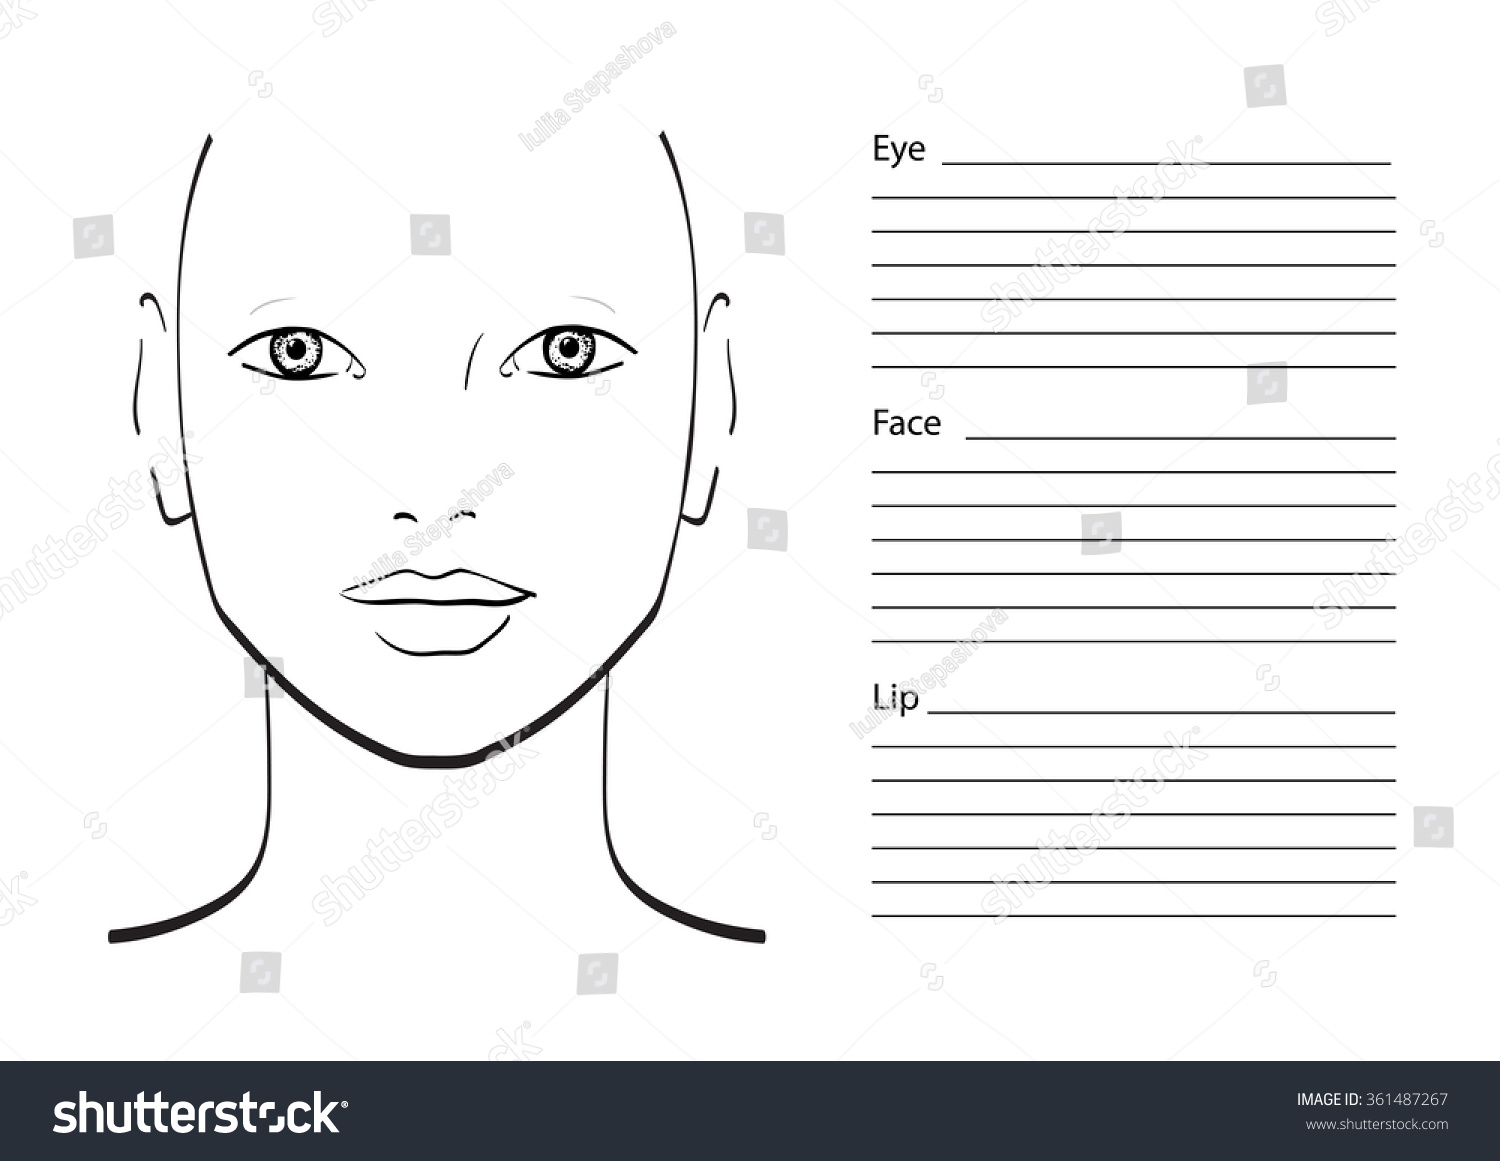 Royalty Free Face Chart Makeup Artist Blank